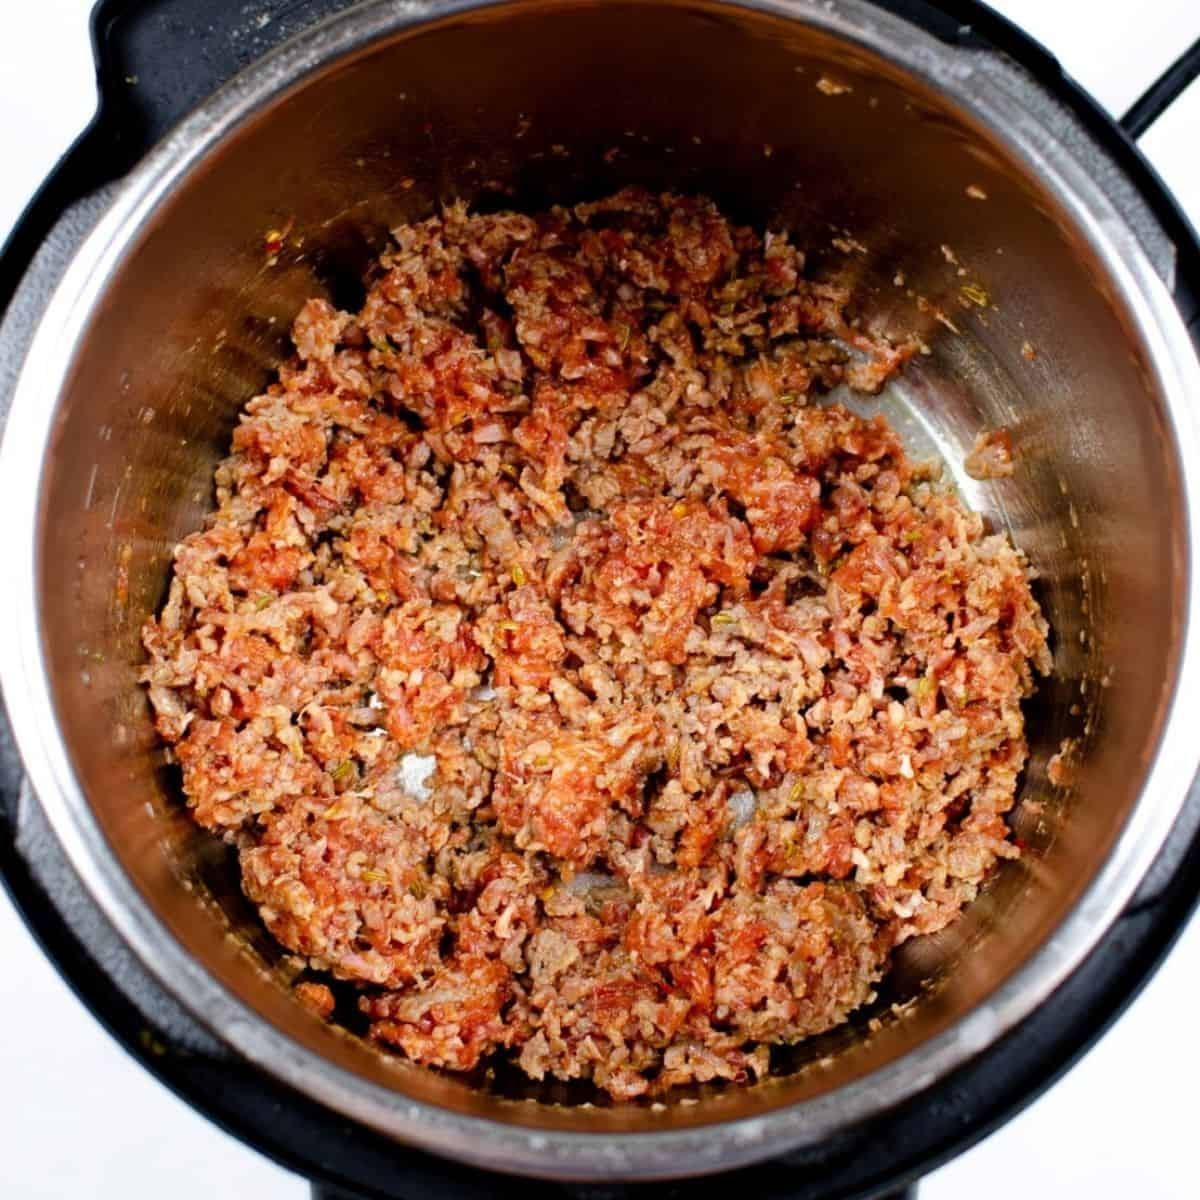 Ground sausage meat browning in an Instant Pot.